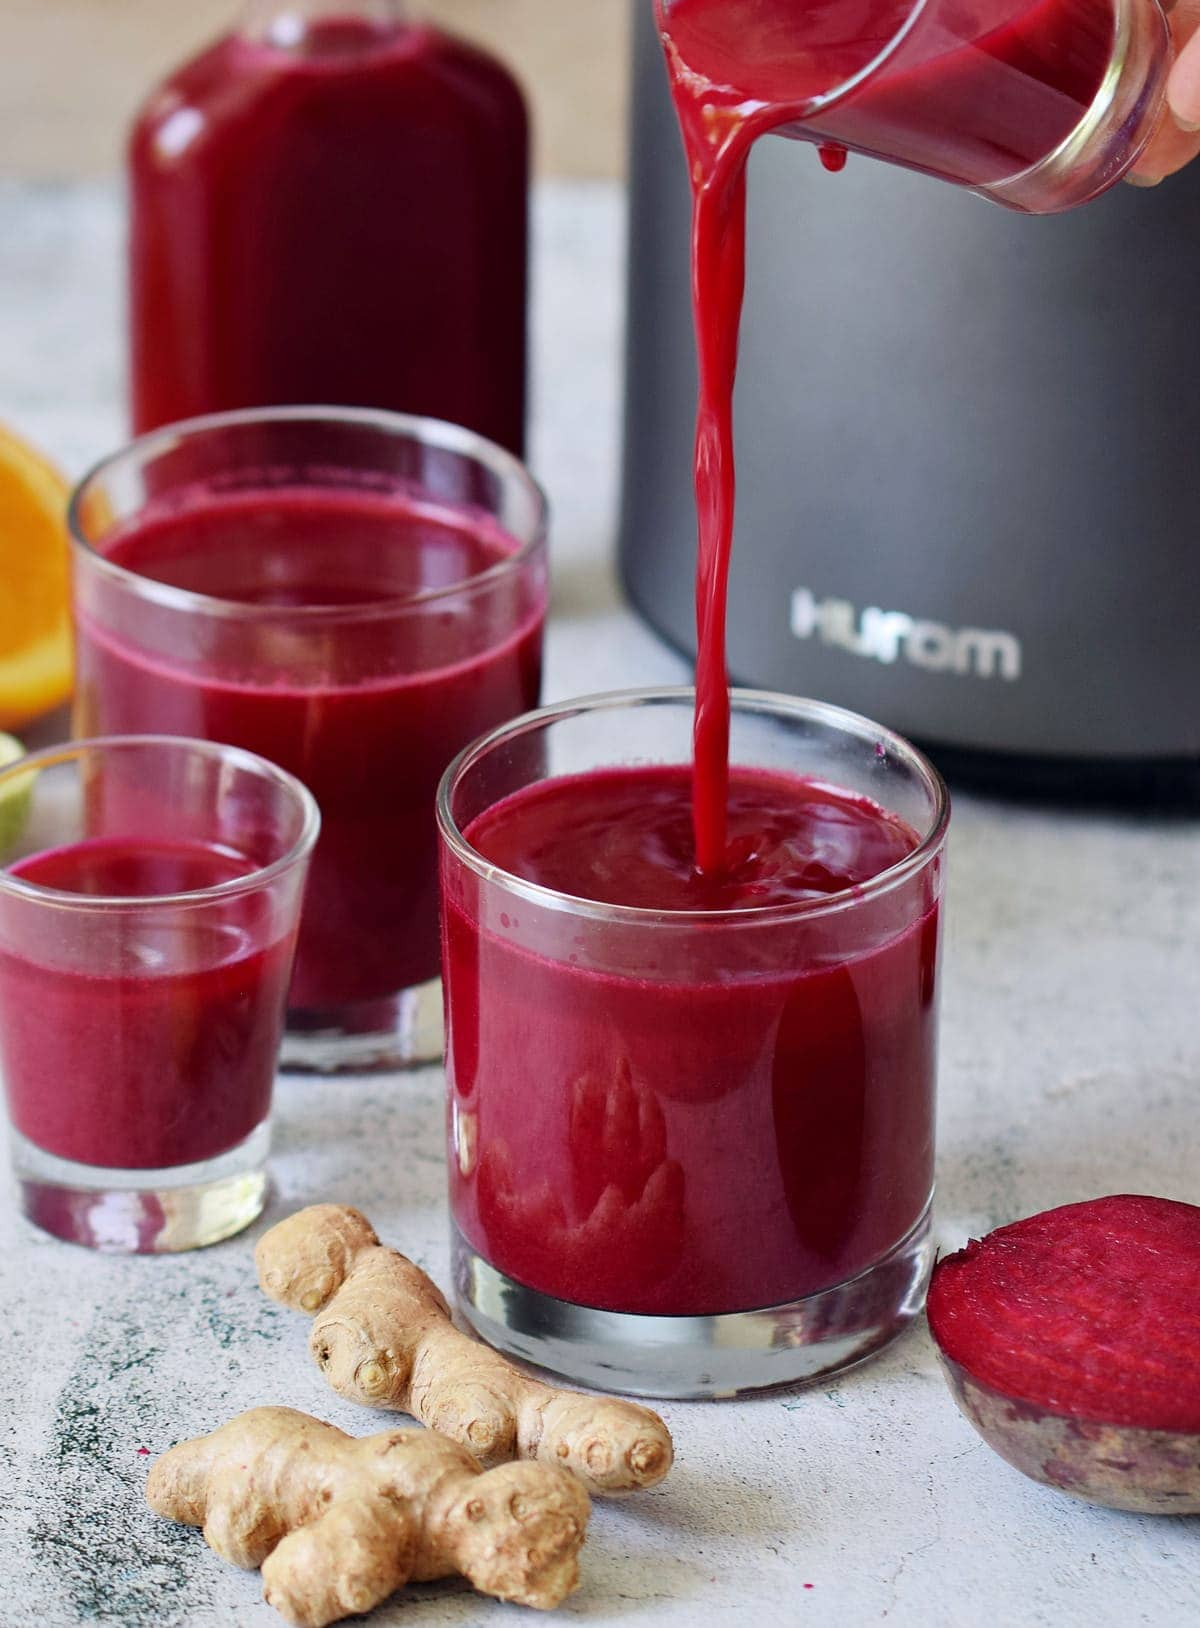 Pouring beetroot immune boosters juice into a glass in front of Hurom juicer